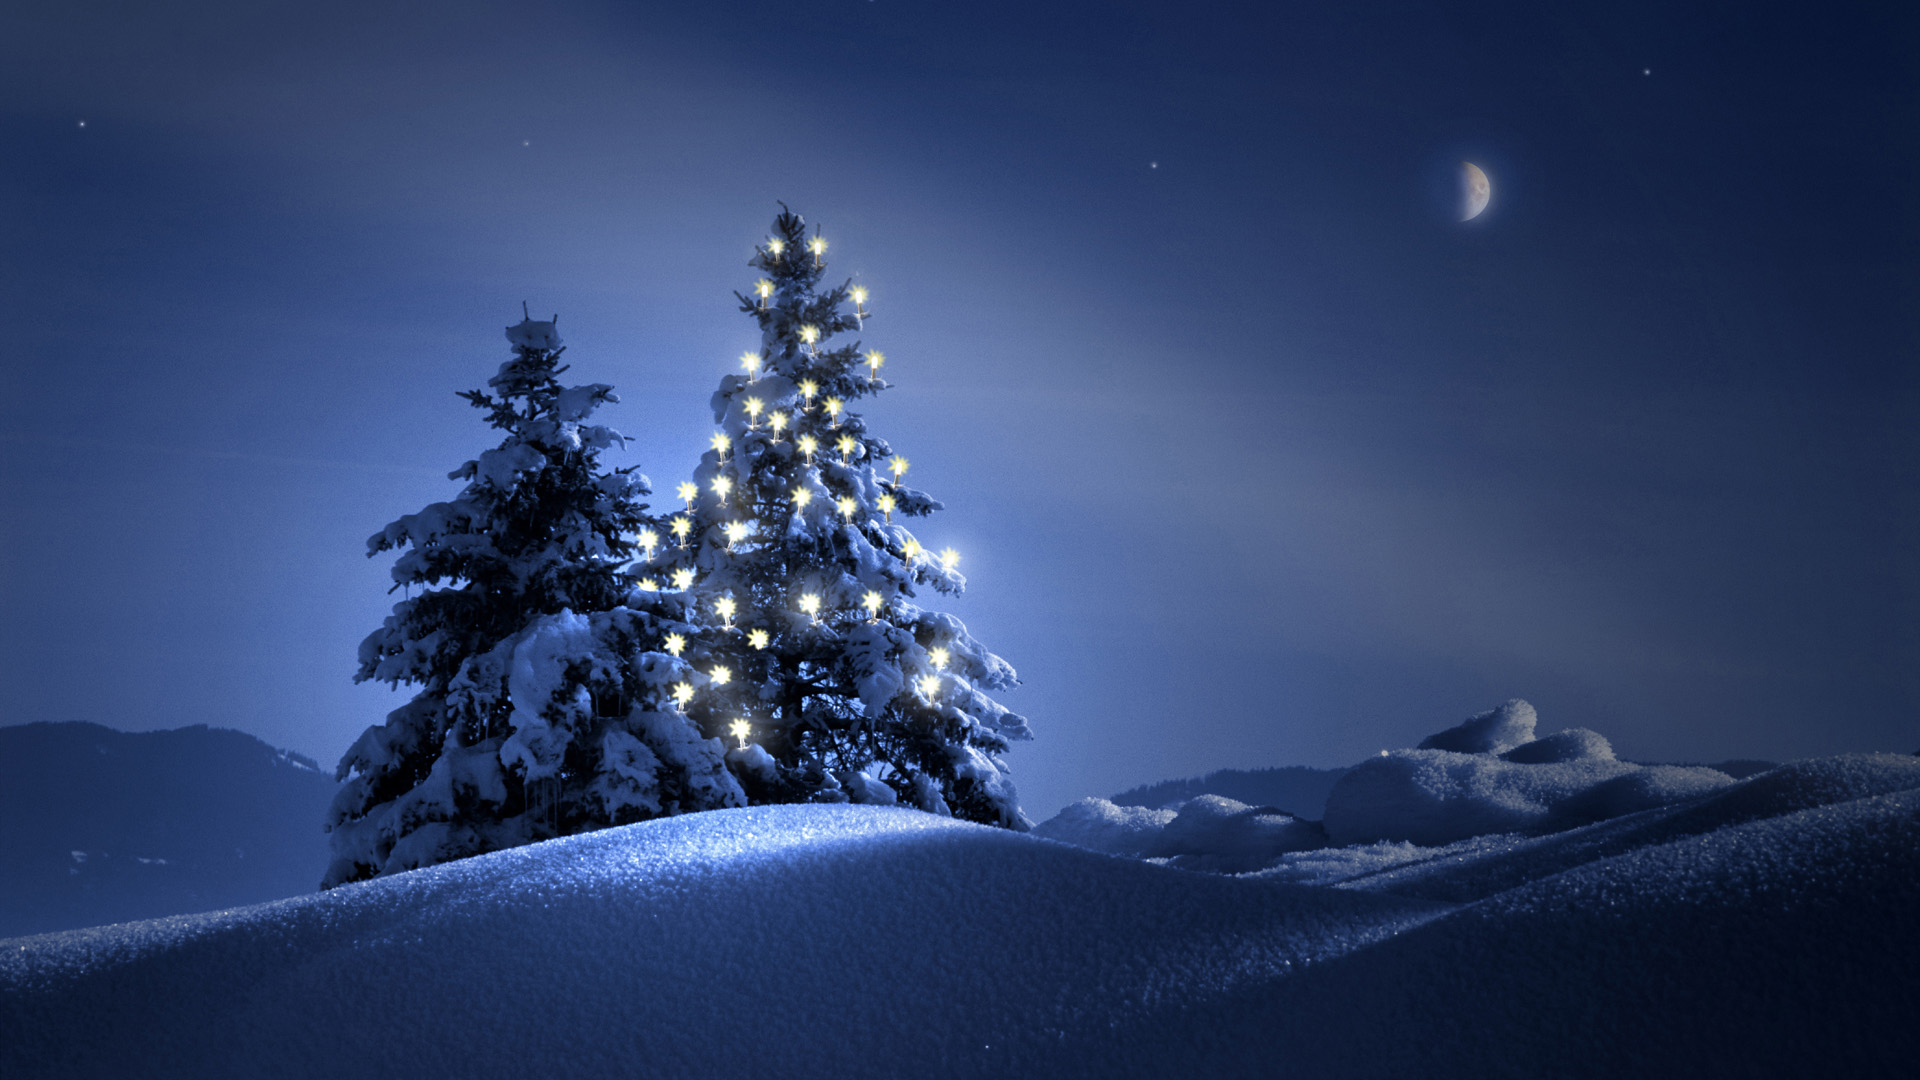 winter scenes wallpaper which is under the winter wallpapers 1920x1080